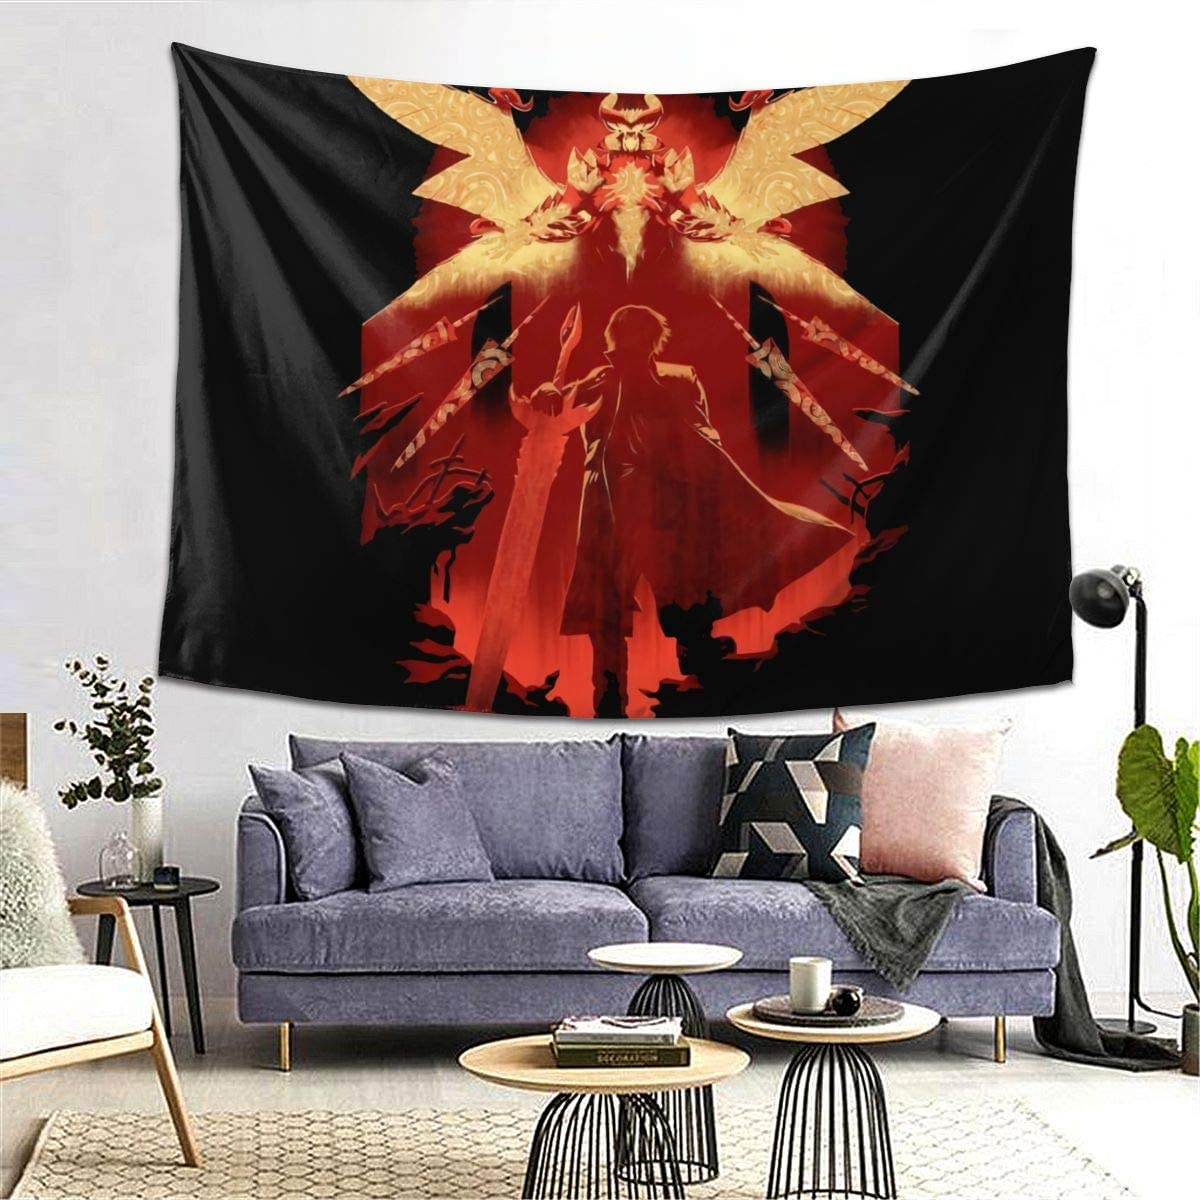 LIAM HENDERSON Devil May Cry 5 DanteWall Hanging Art Tapestry Home Deco Wall Art Decoration for Bedroom Living Room Dorm Picnic Cloth, Porch Hangings, Tablecloths,Bedspreads 8060inch